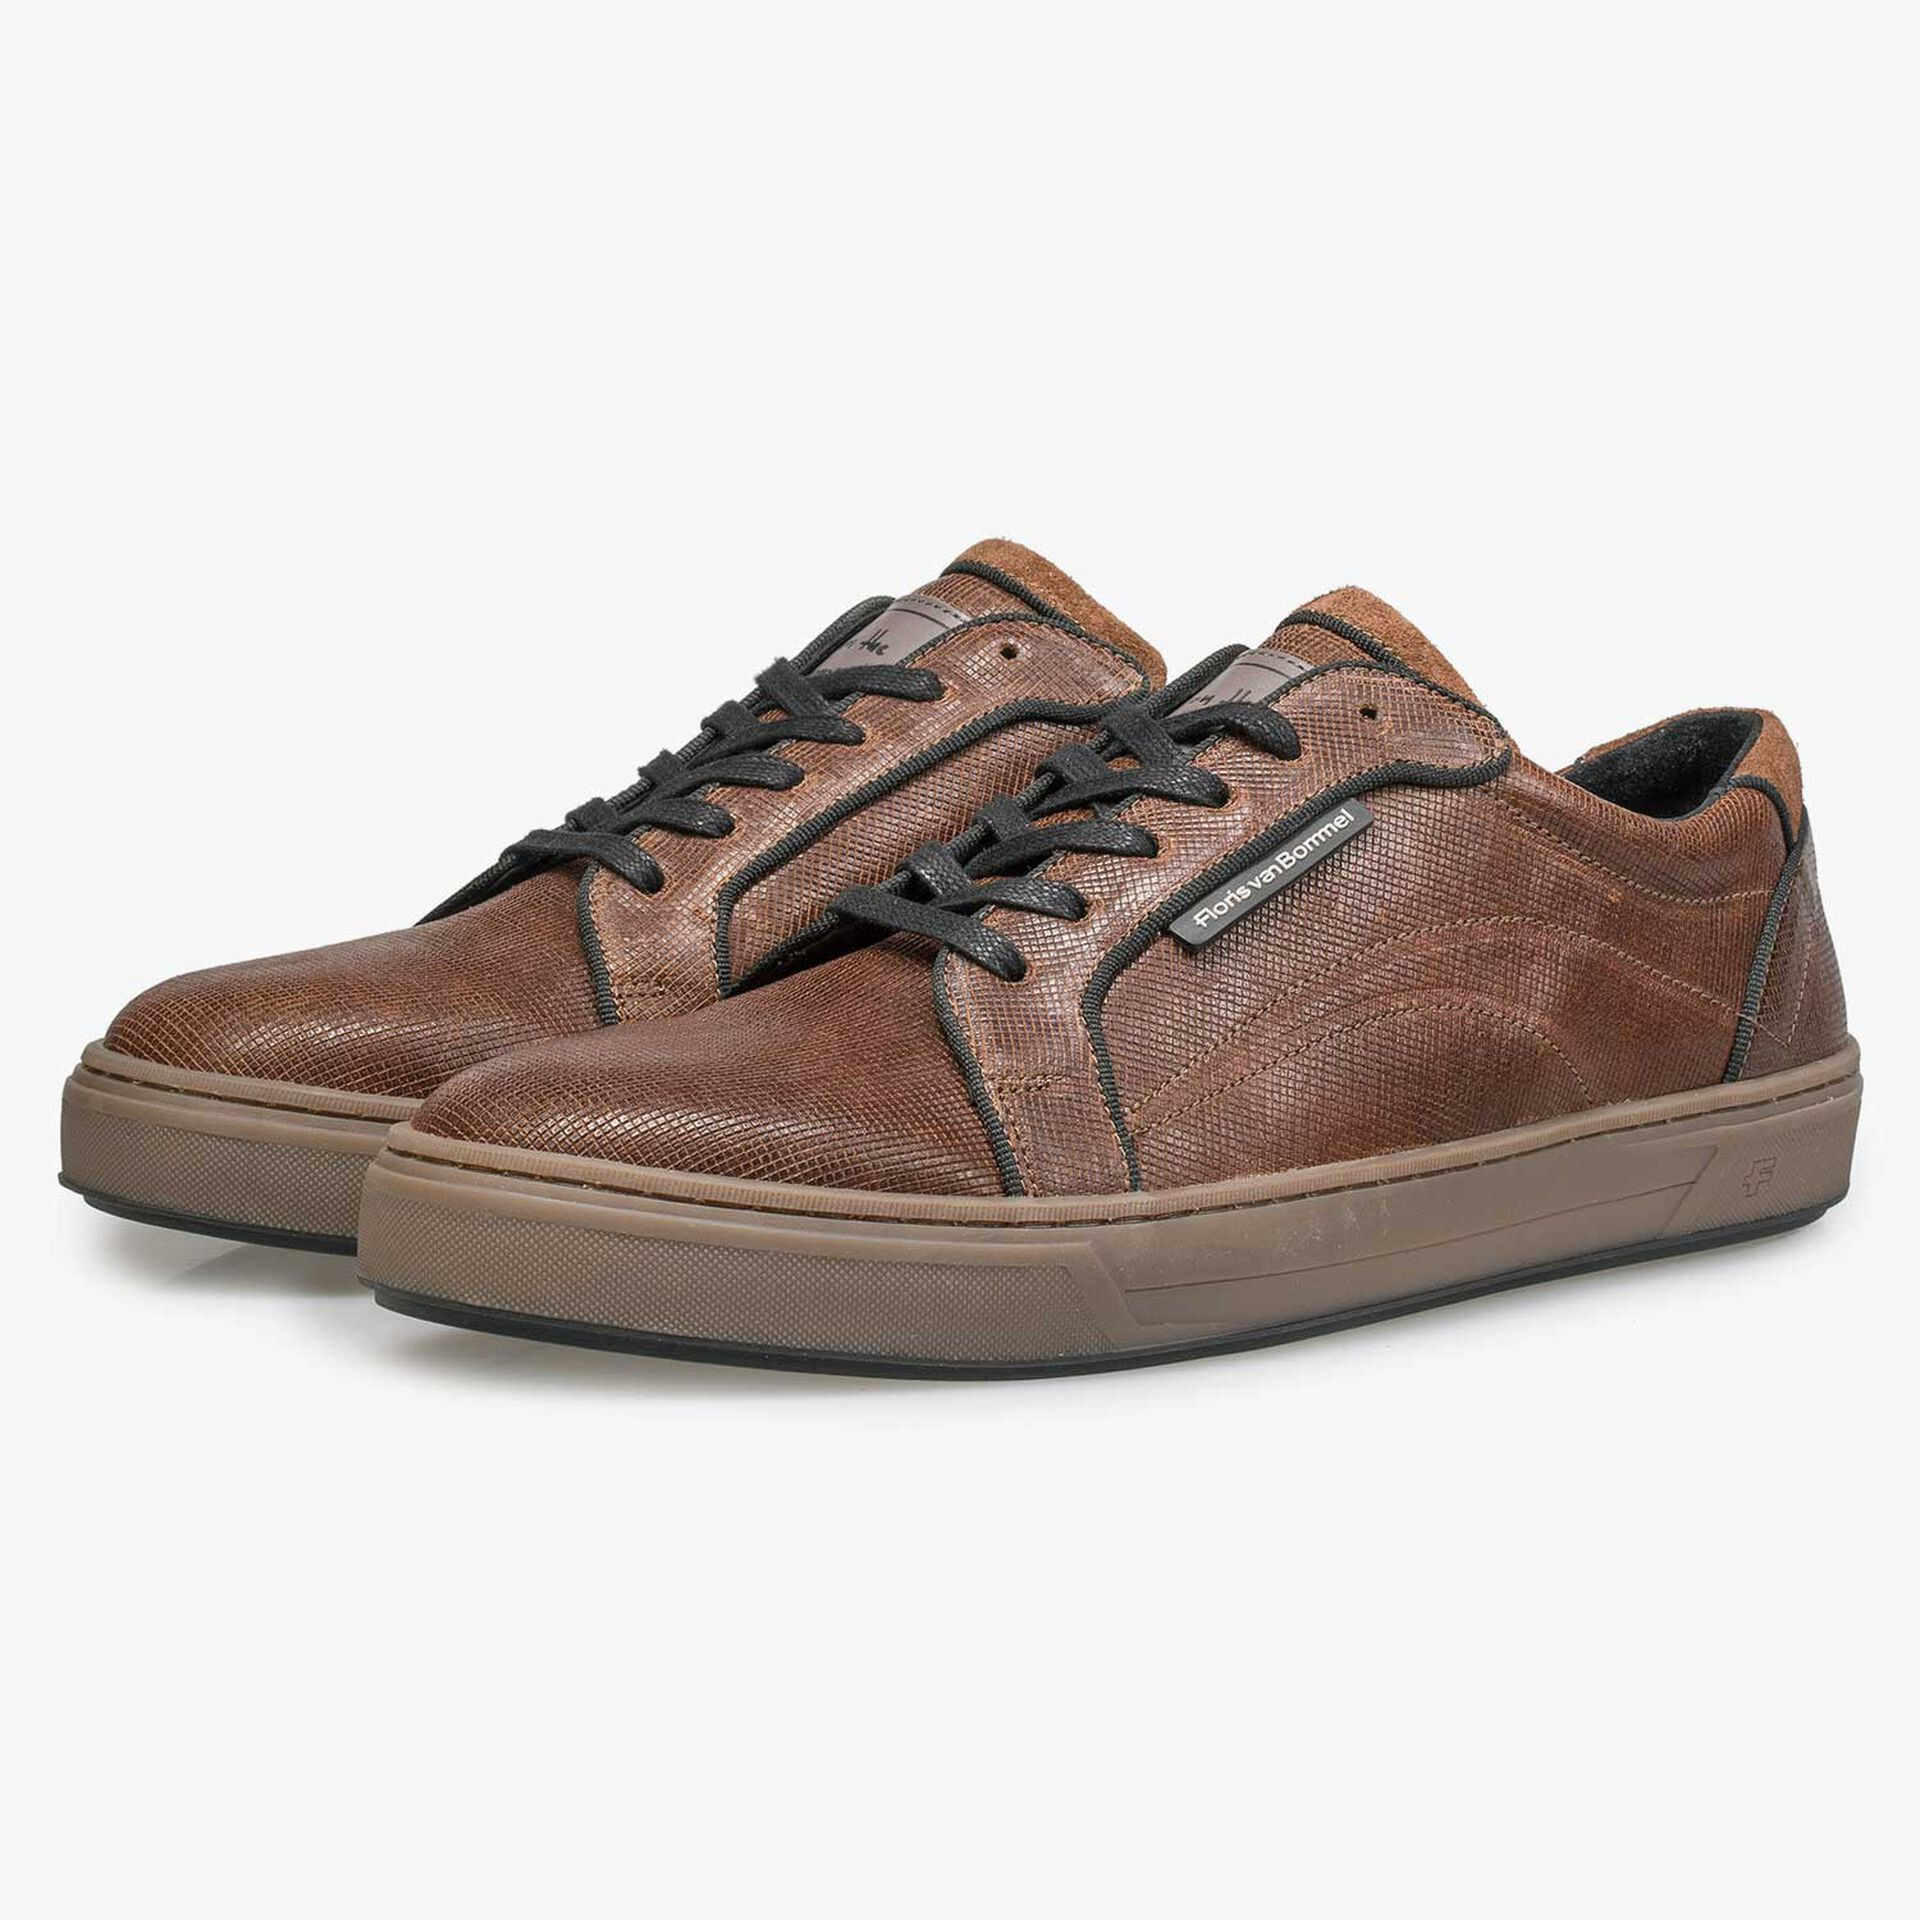 Brown sneaker with print